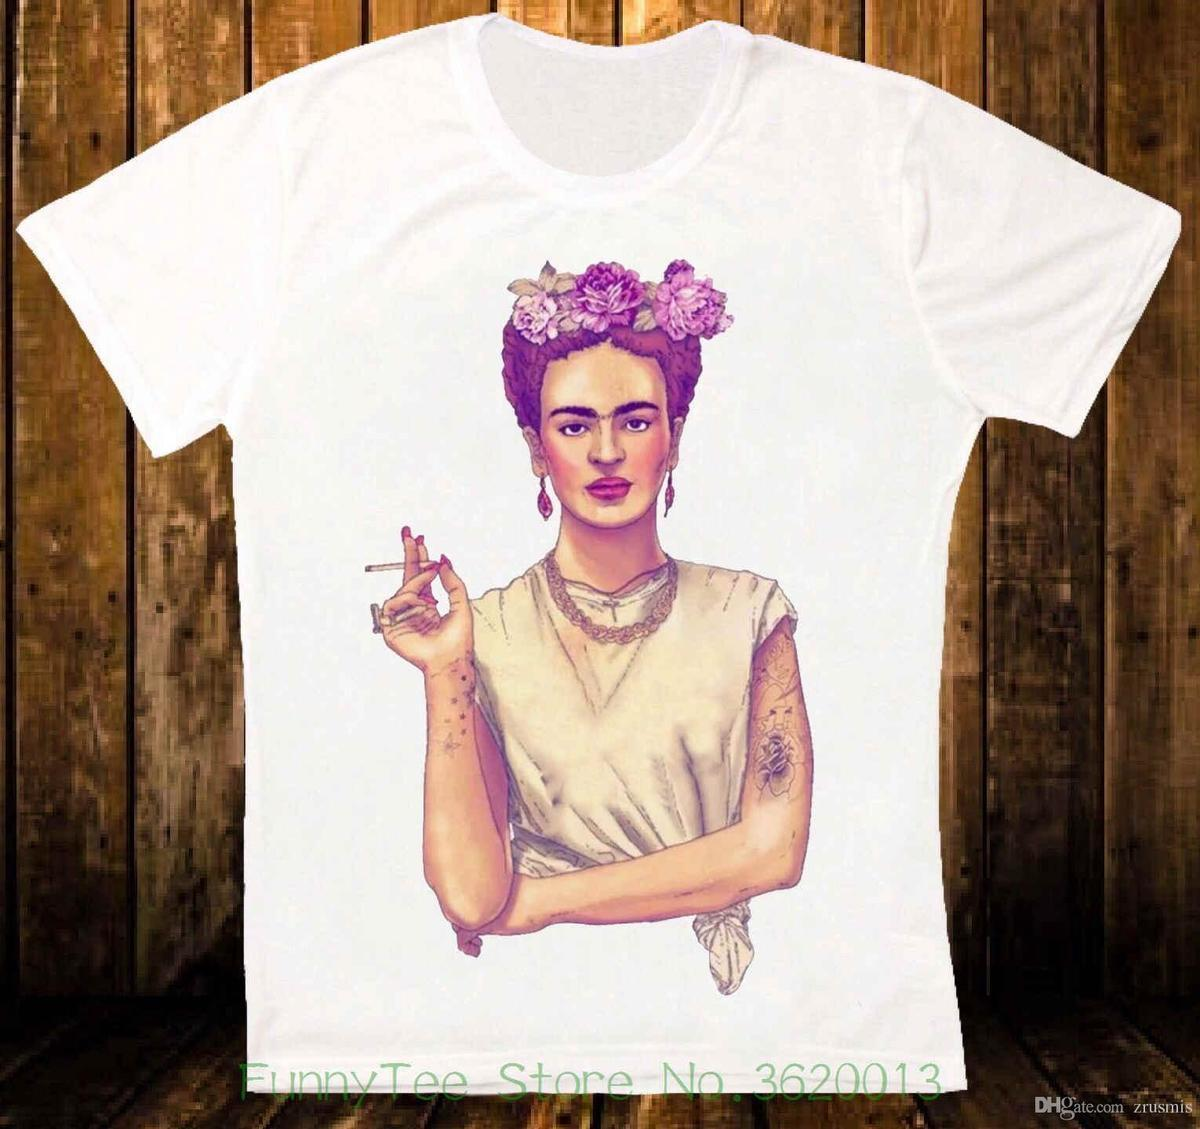 b2d1de1a8 Vrouwen Tee Frida Kahlo Art Retro Vintage Slip Taille Basse Unisexe T Shirt  201 Katoen Plus Size Fashion Top Tees Shirts And T Shirts Buy Cool T Shirts  From ...